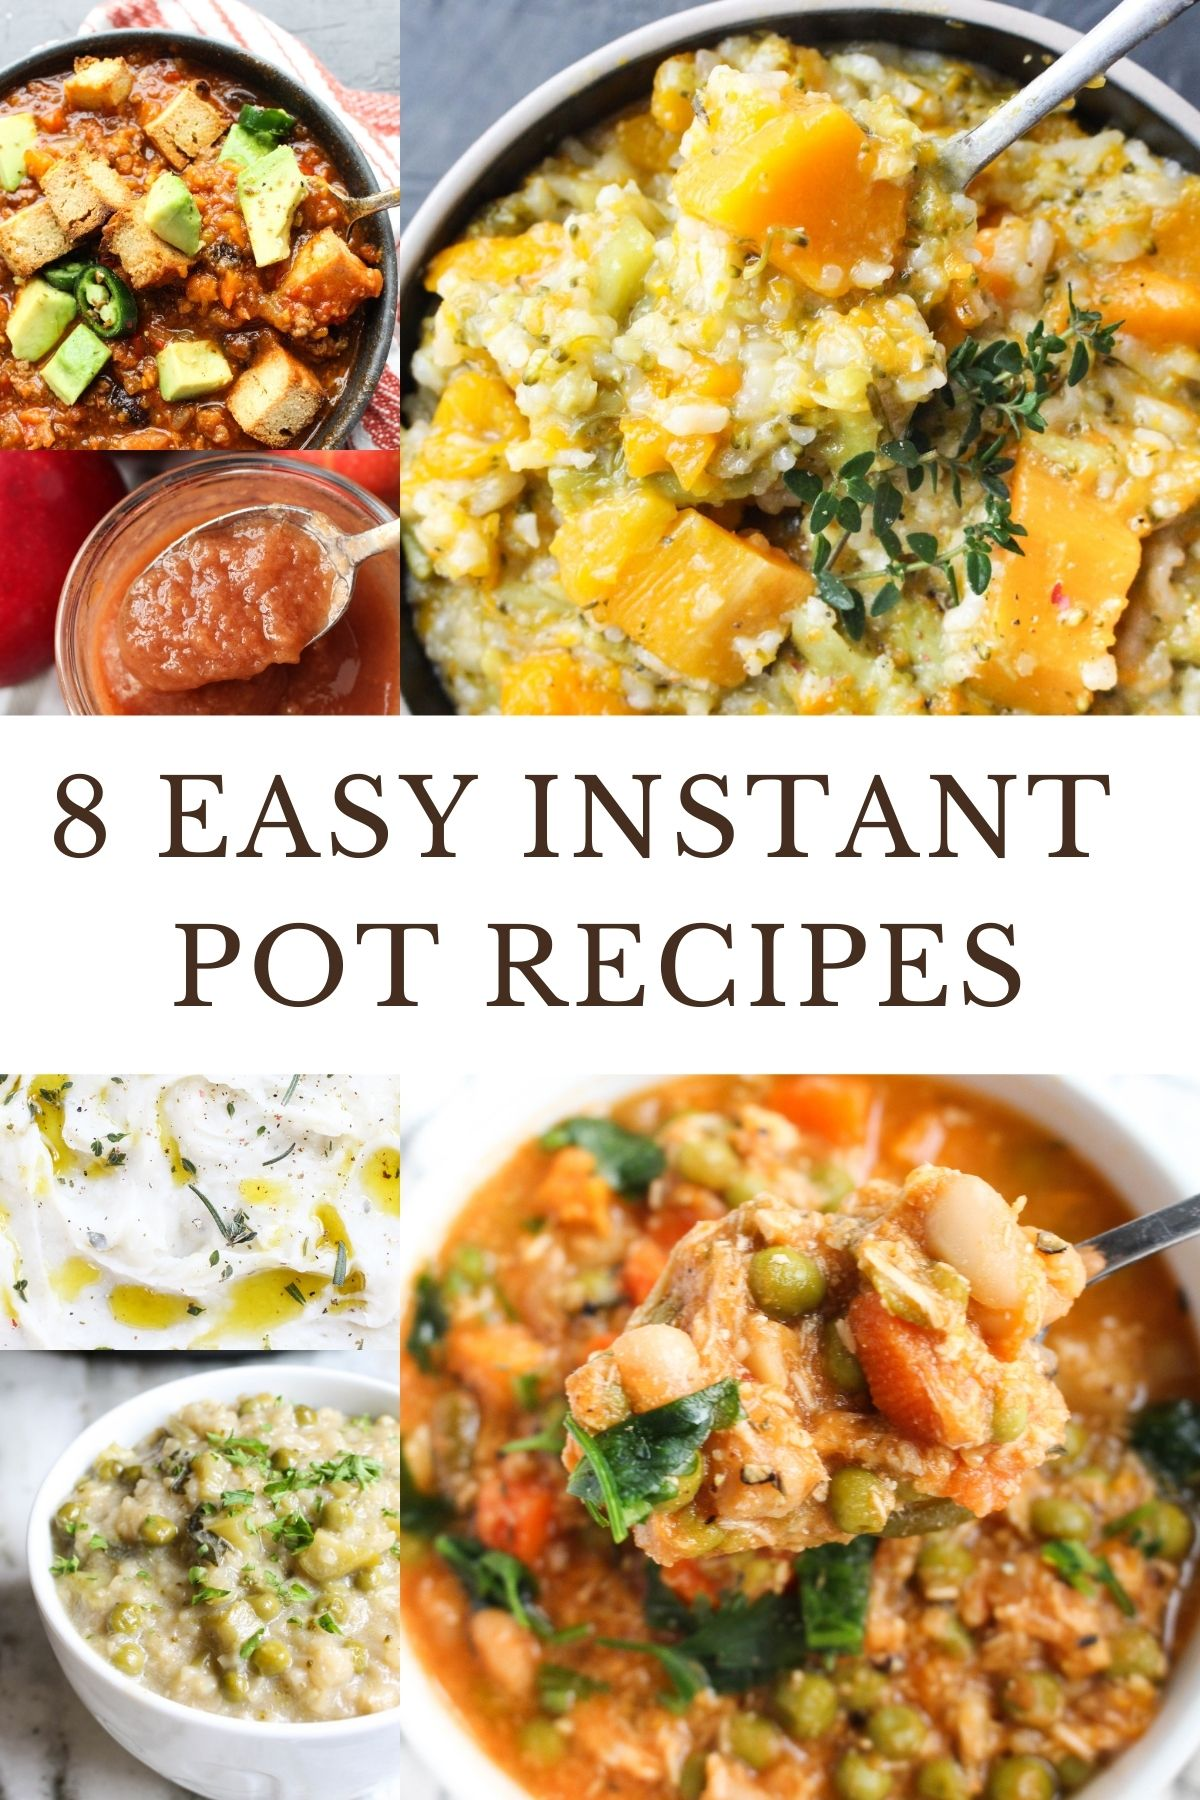 Photo collage of instant pot recipes.